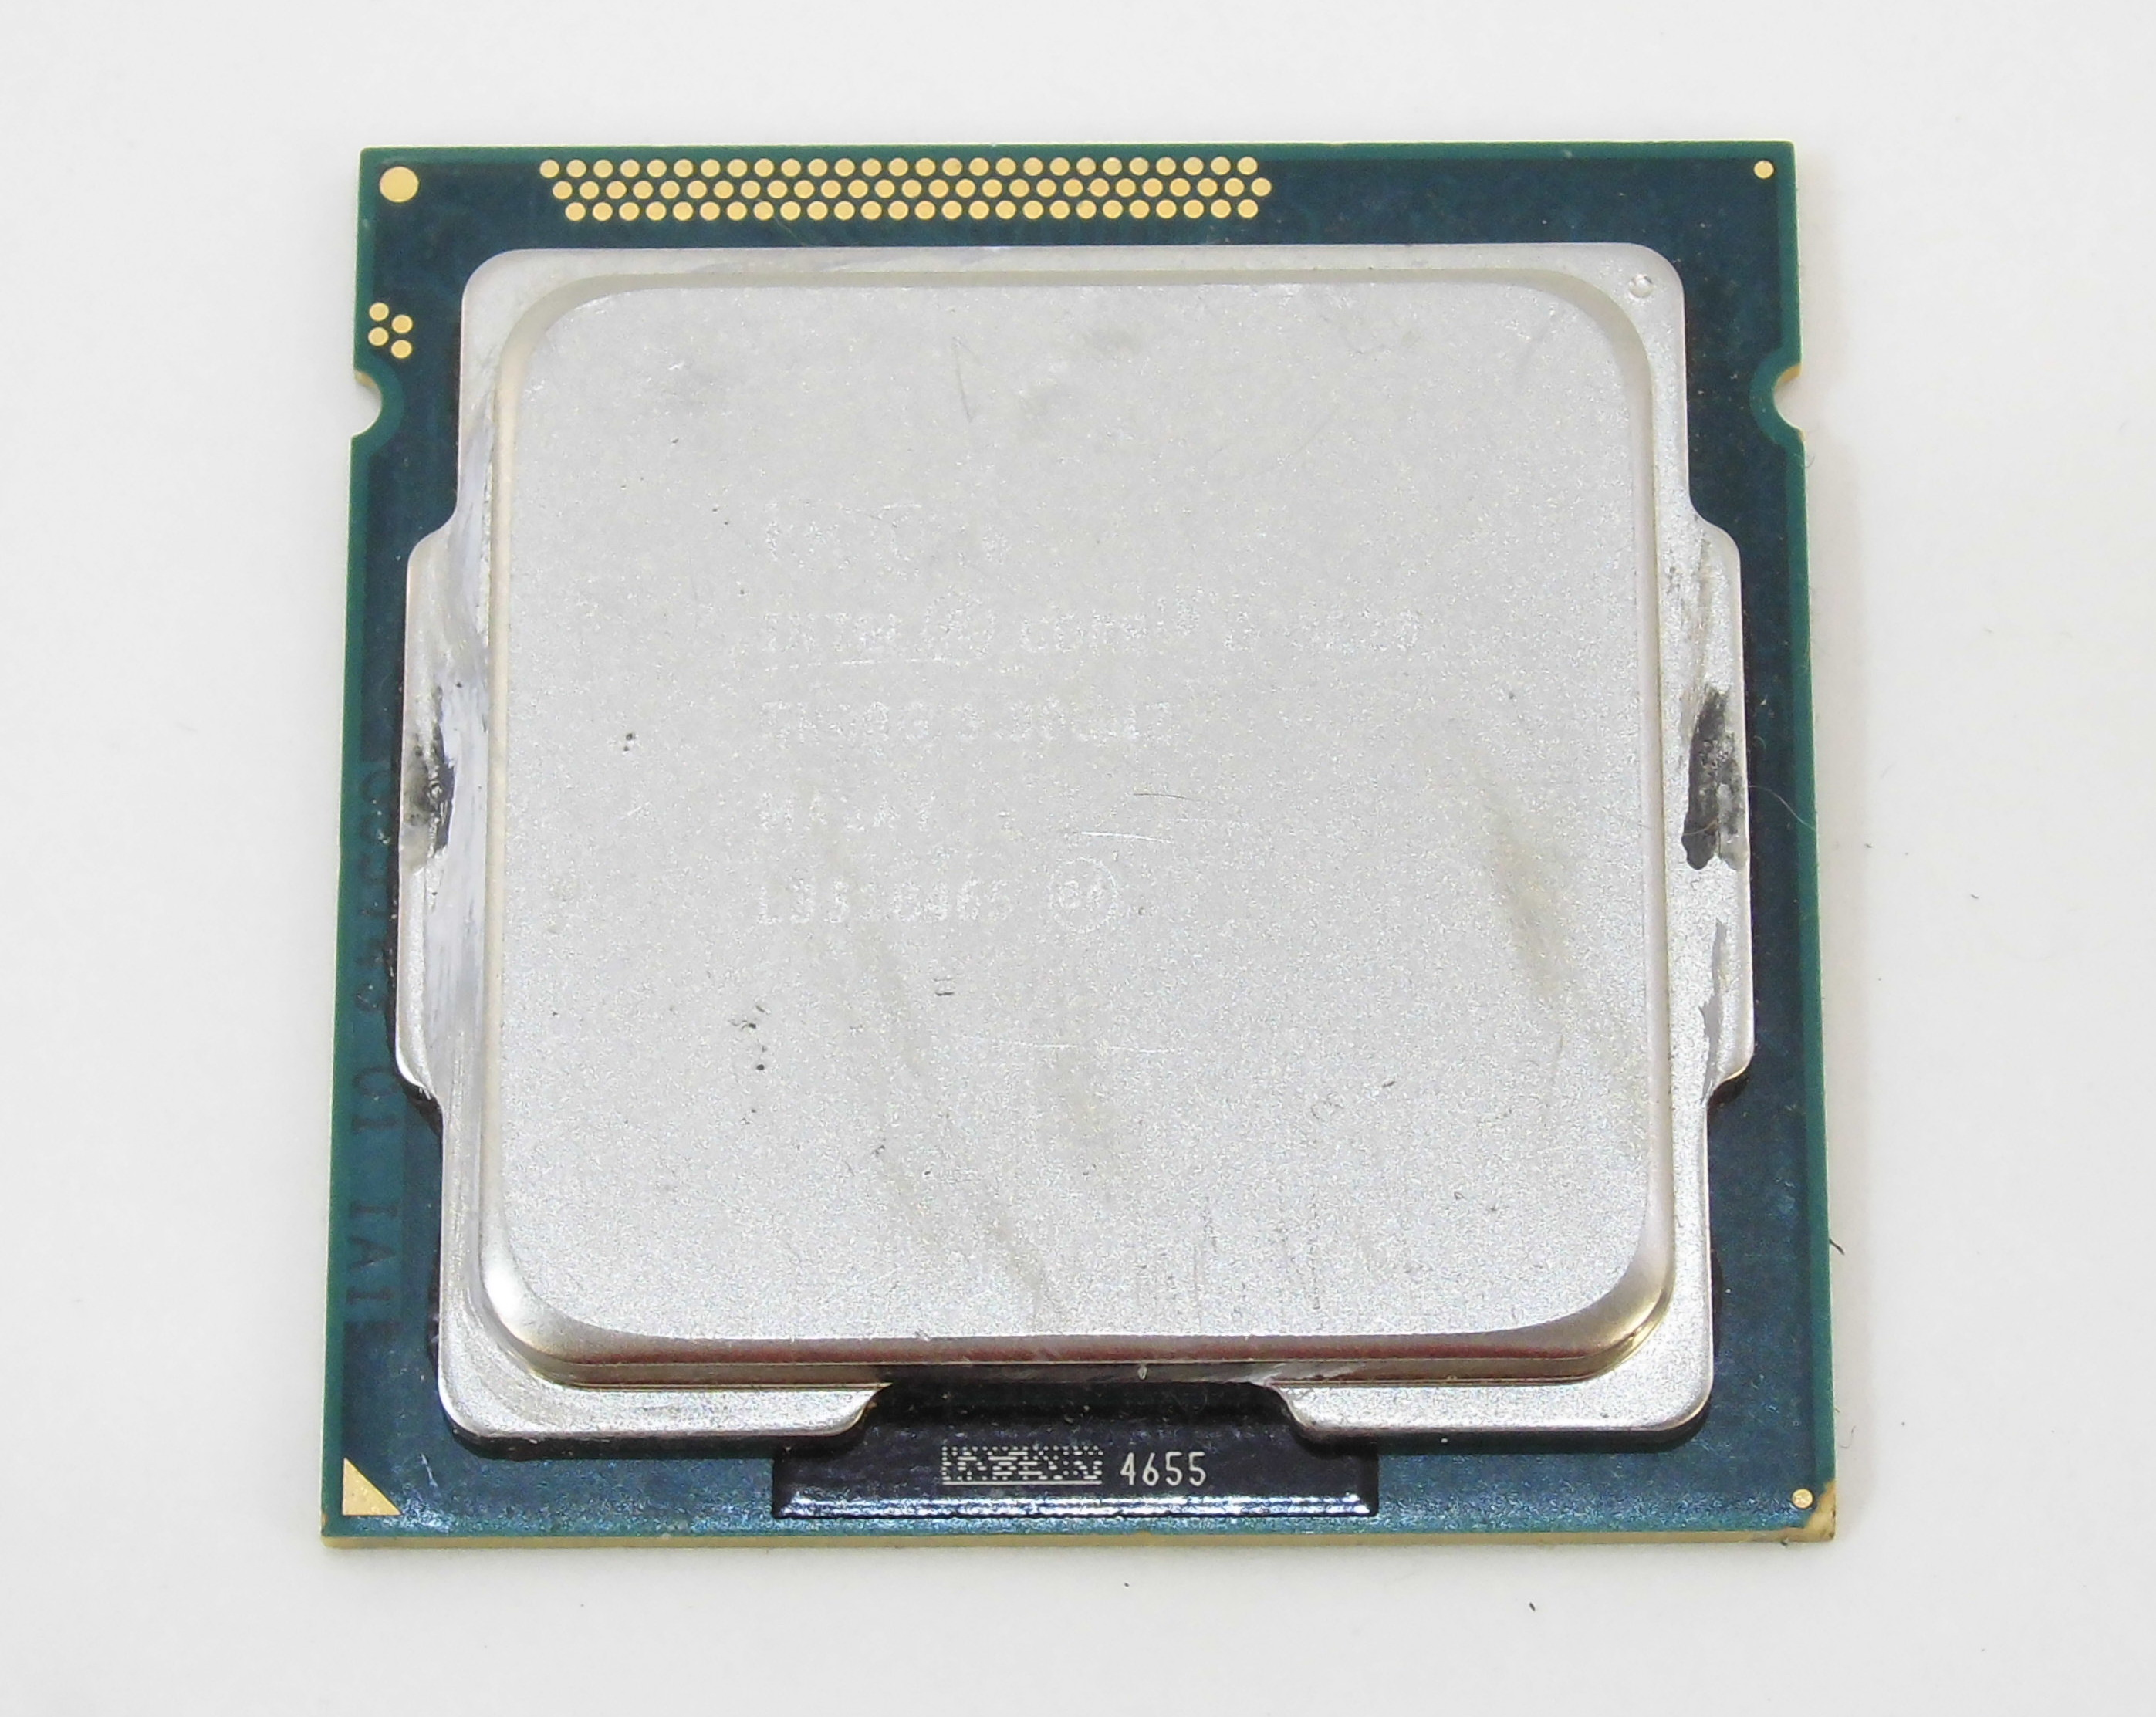 Процессор Intel Core i3-3220 3.3GHz - Pic n 252000